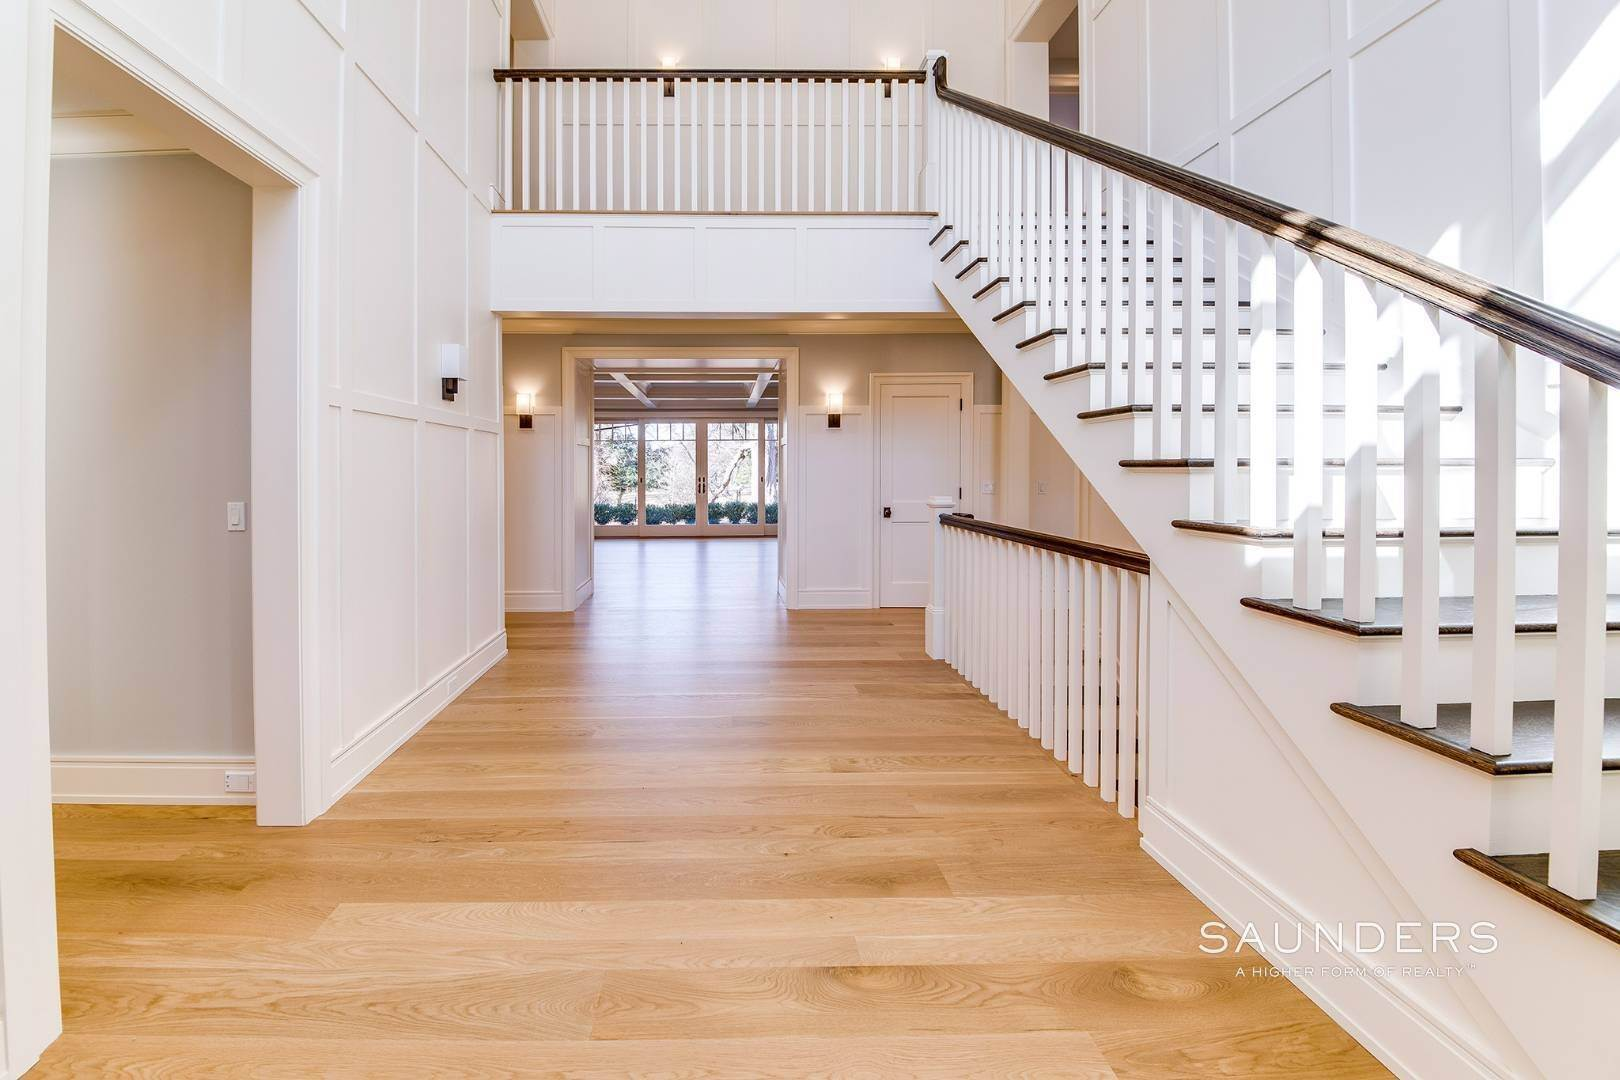 2. Single Family Homes for Sale at Luxury New Construction By The Bay In Amagansett 57 Broadview Road, Amagansett, East Hampton Town, NY 11930